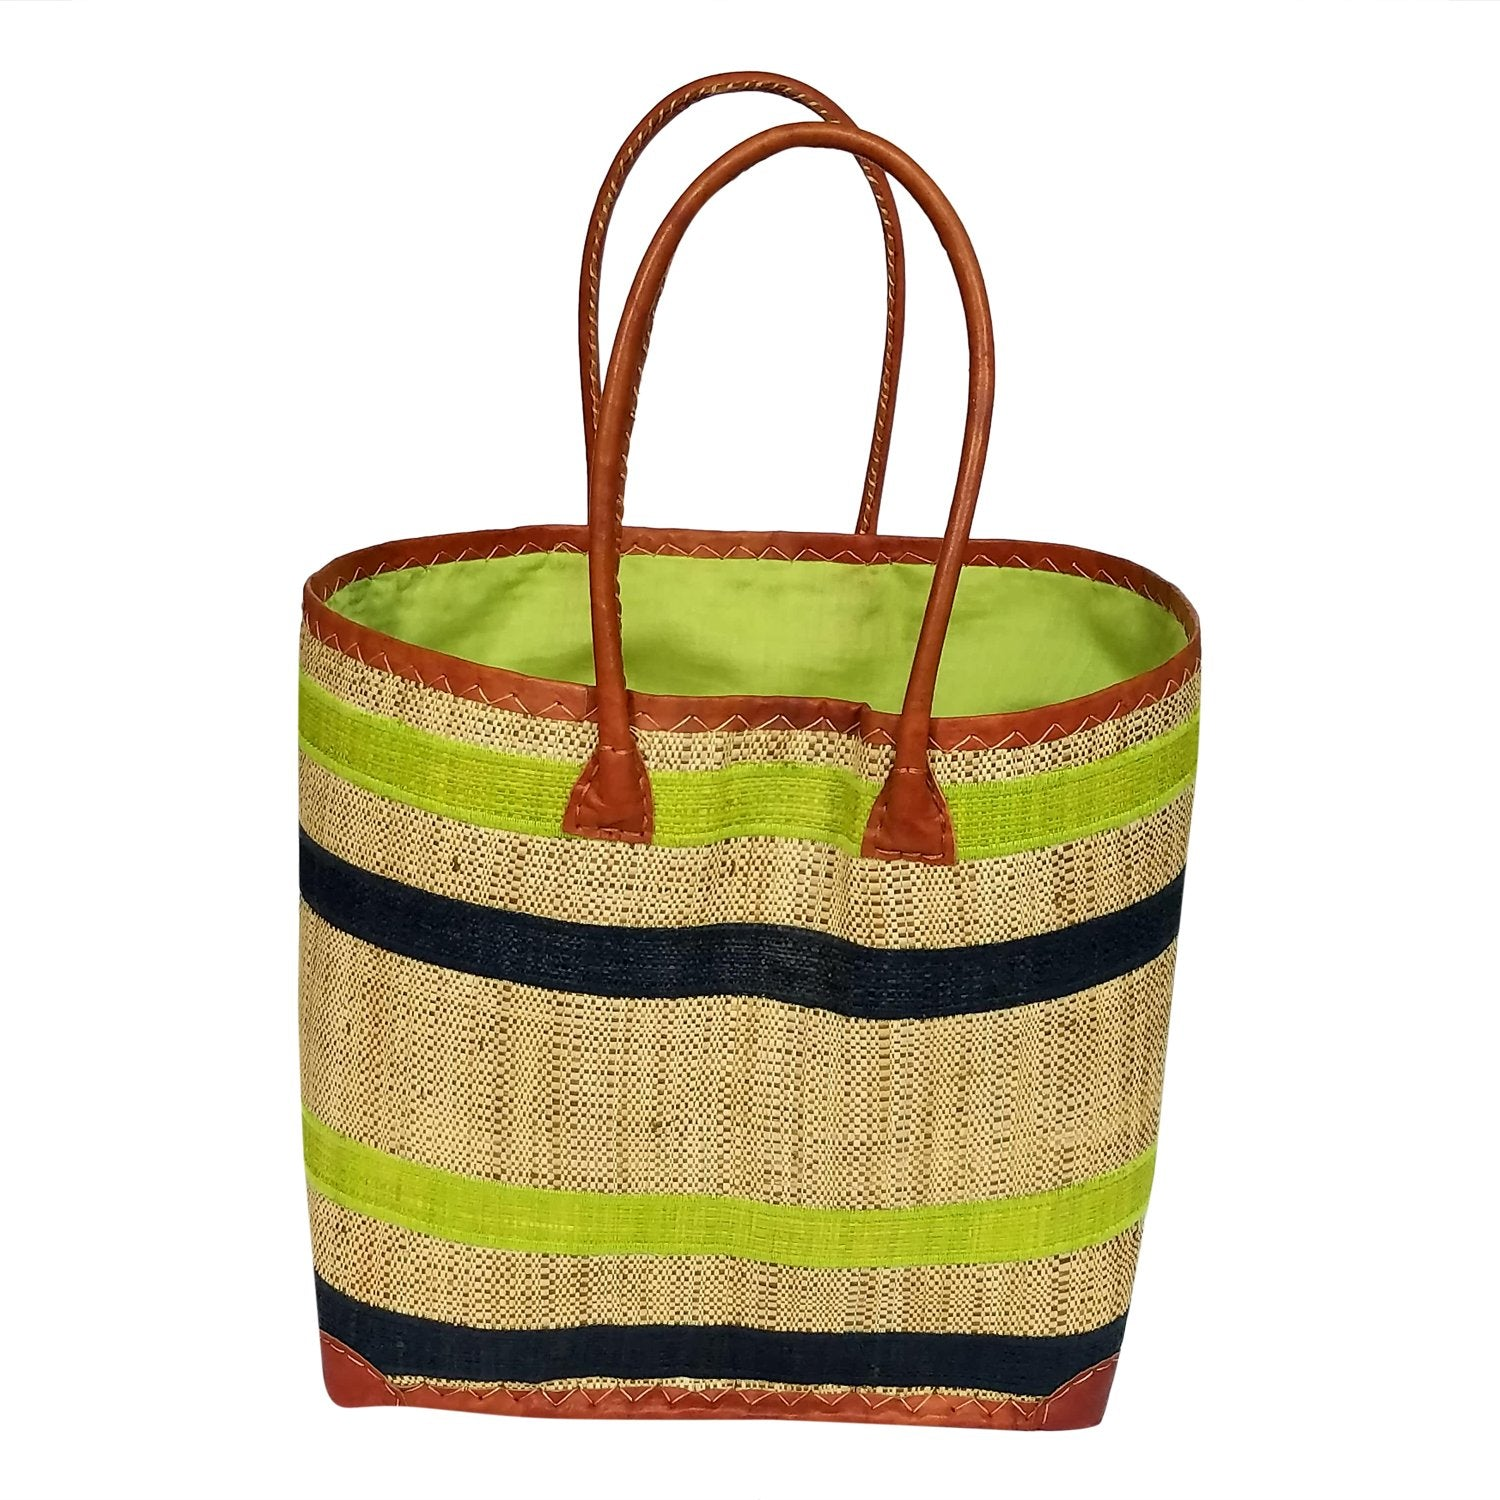 Pamella: Authentic Handmade Lime & Black Madagascar Raffia Betsi Bag